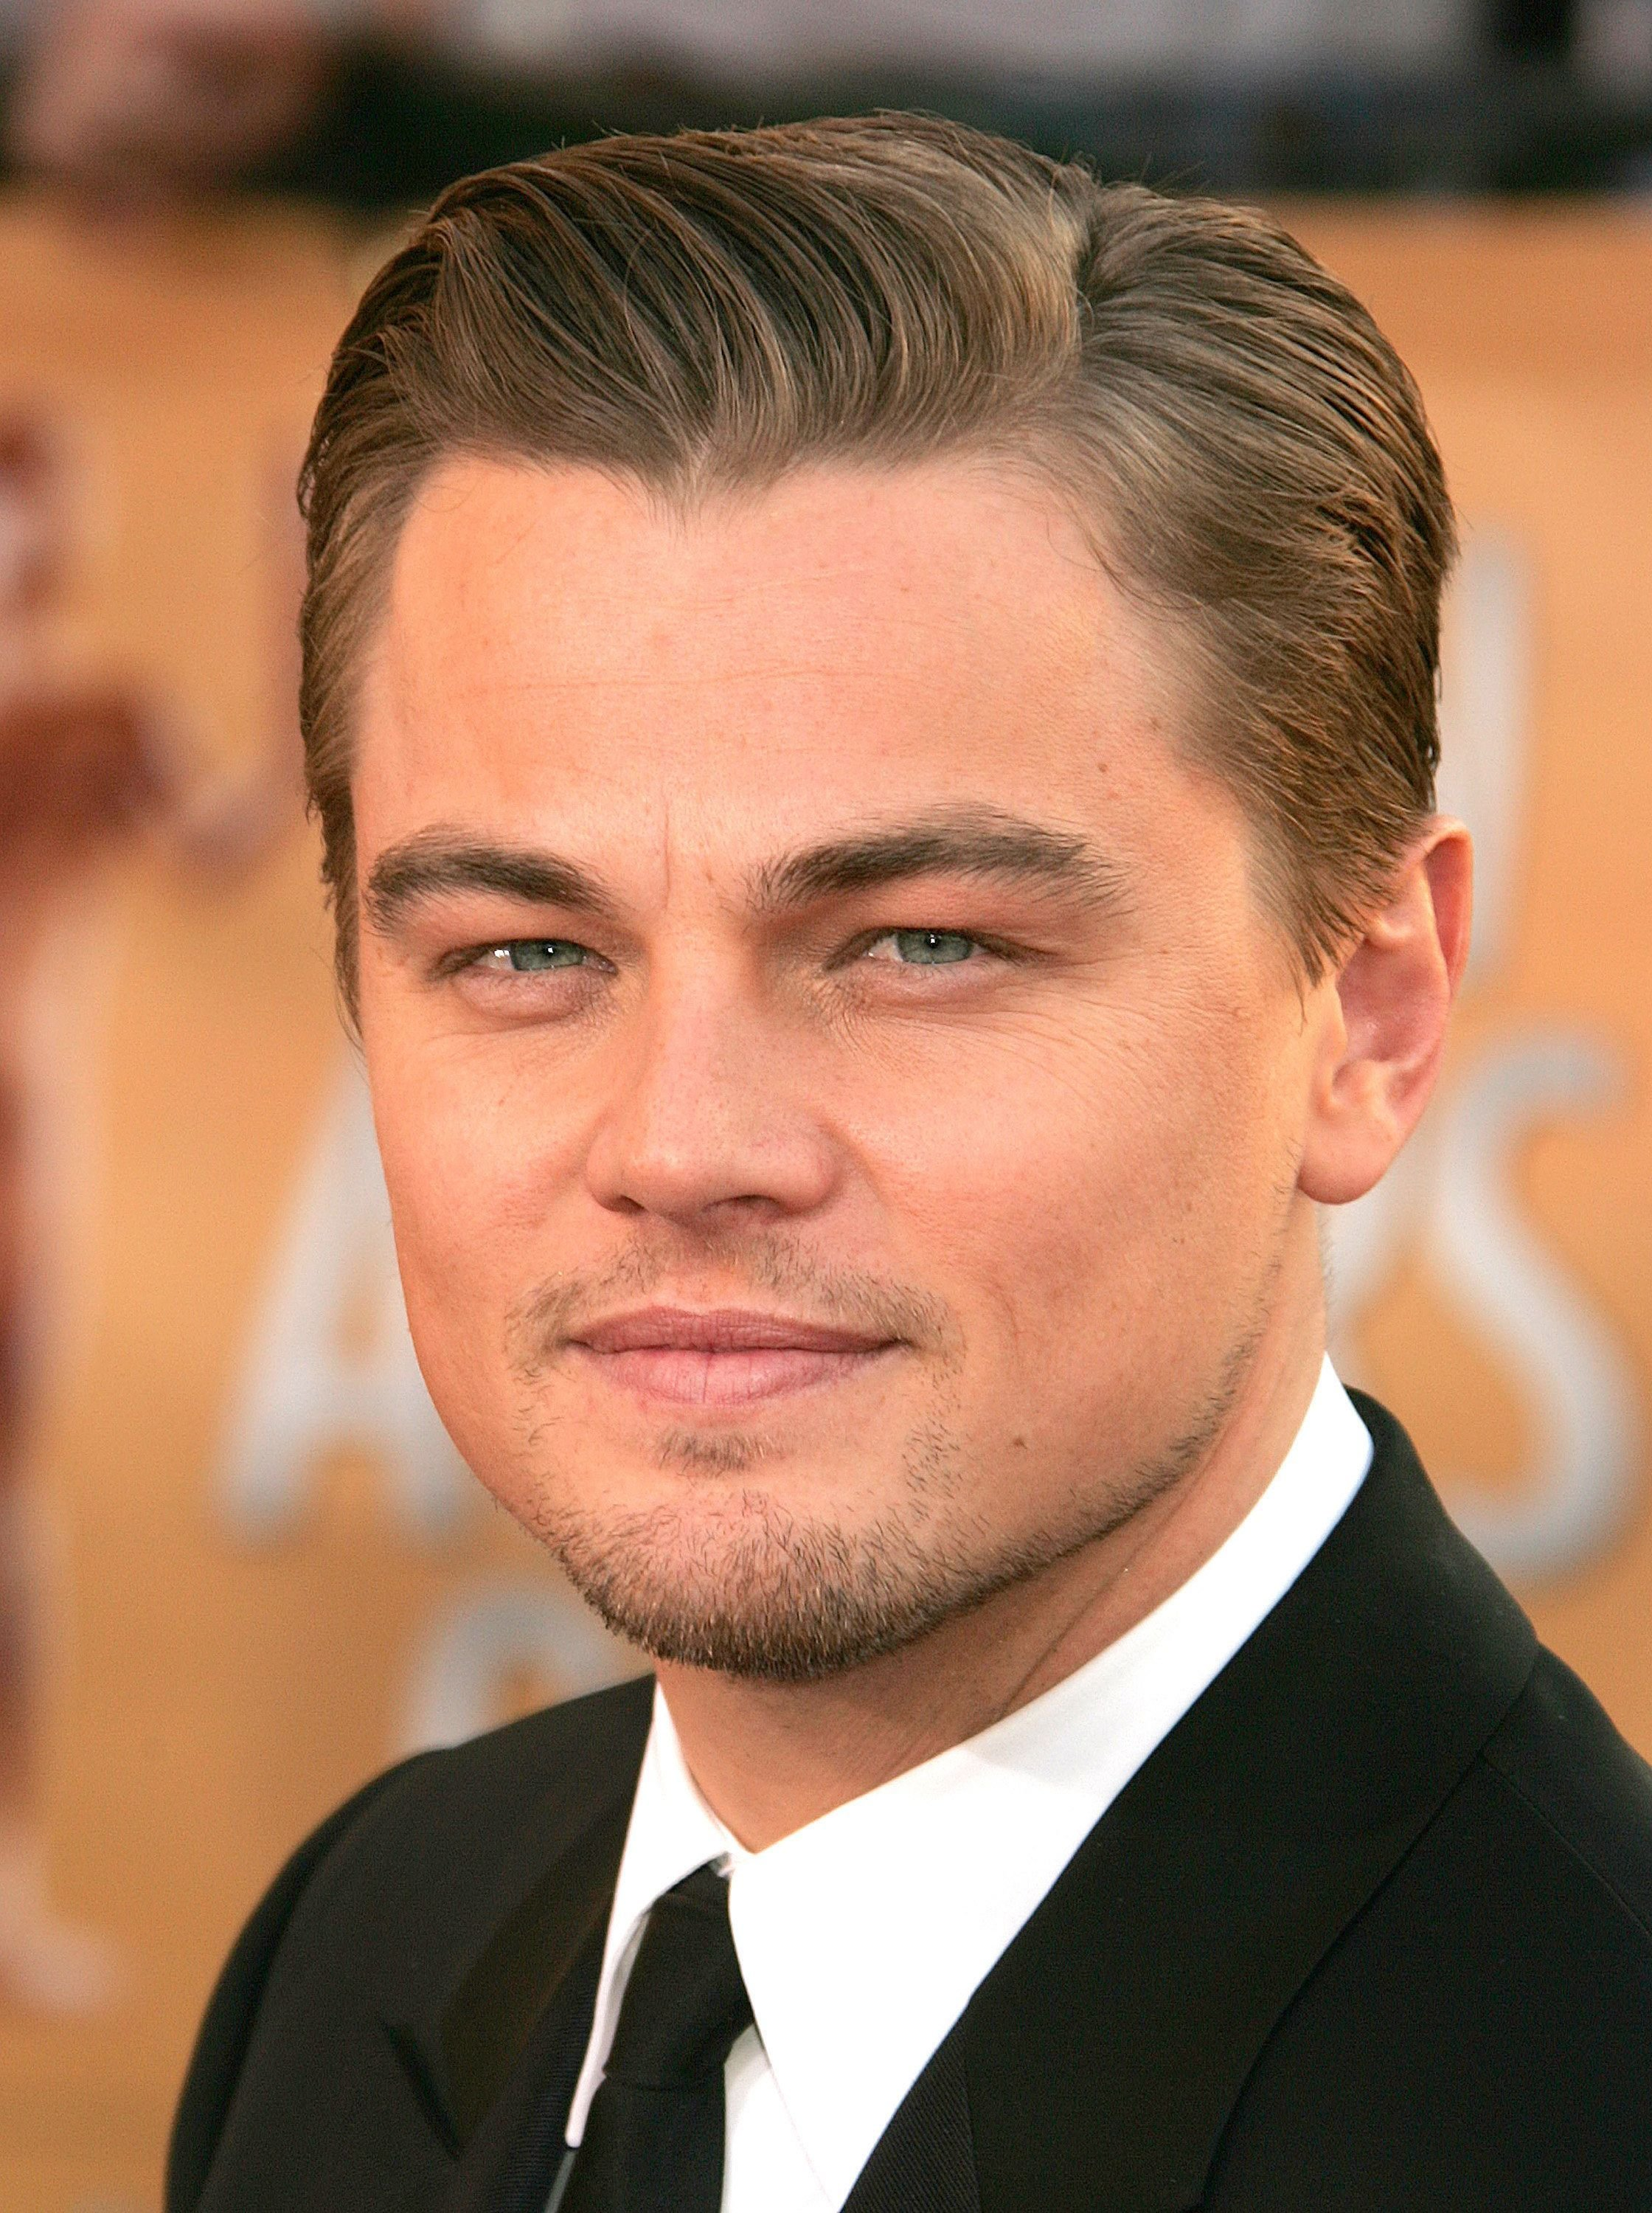 The Best Here S Why Leonardo Dicaprio Has Never Had A Bad Hair Day Pictures